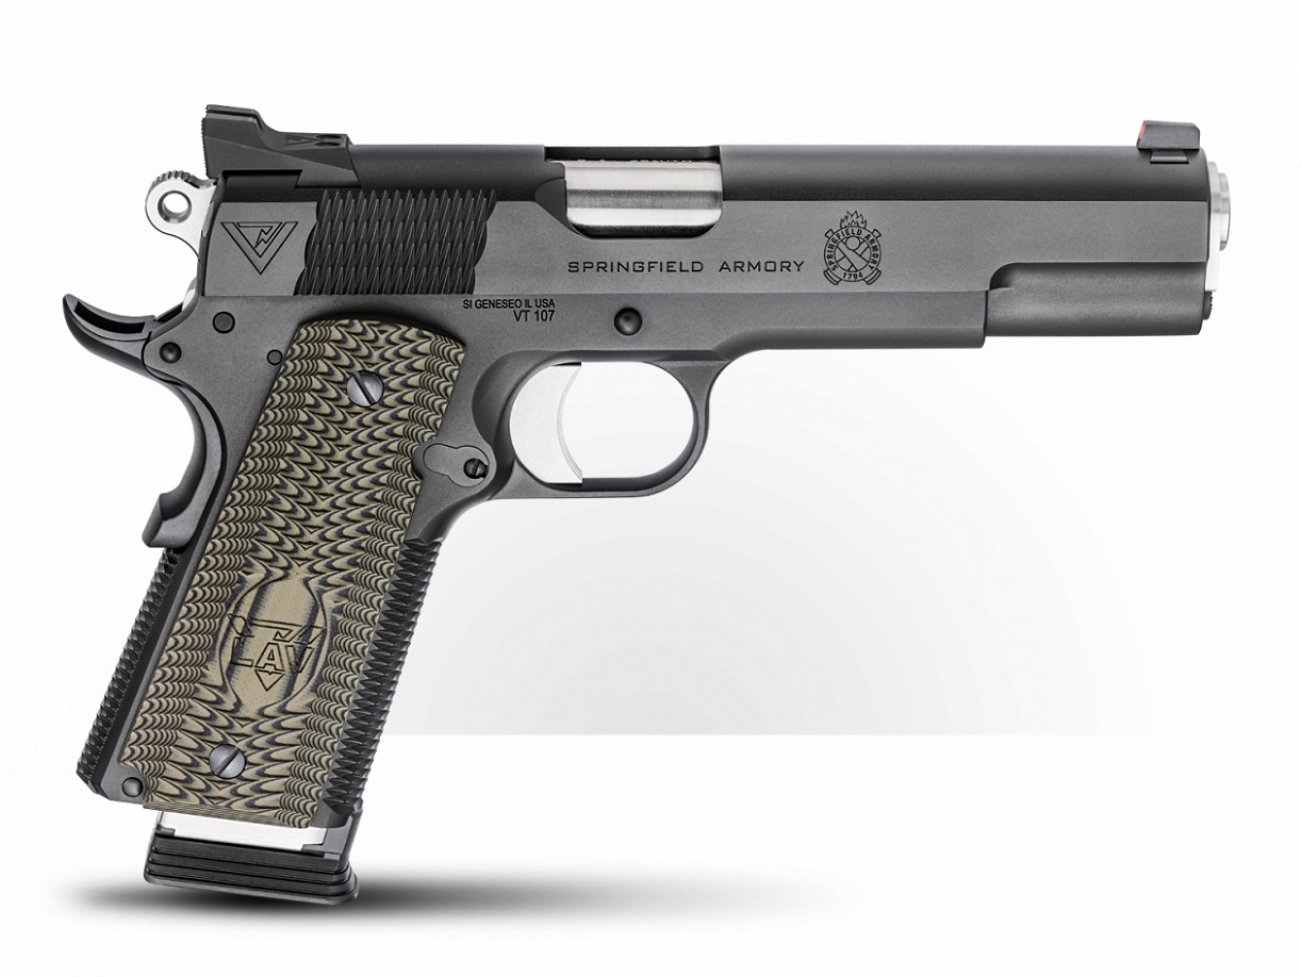 Springfield Armory's 1911 Vickers Tactical Handgun: Just Another 1911 Pistol?